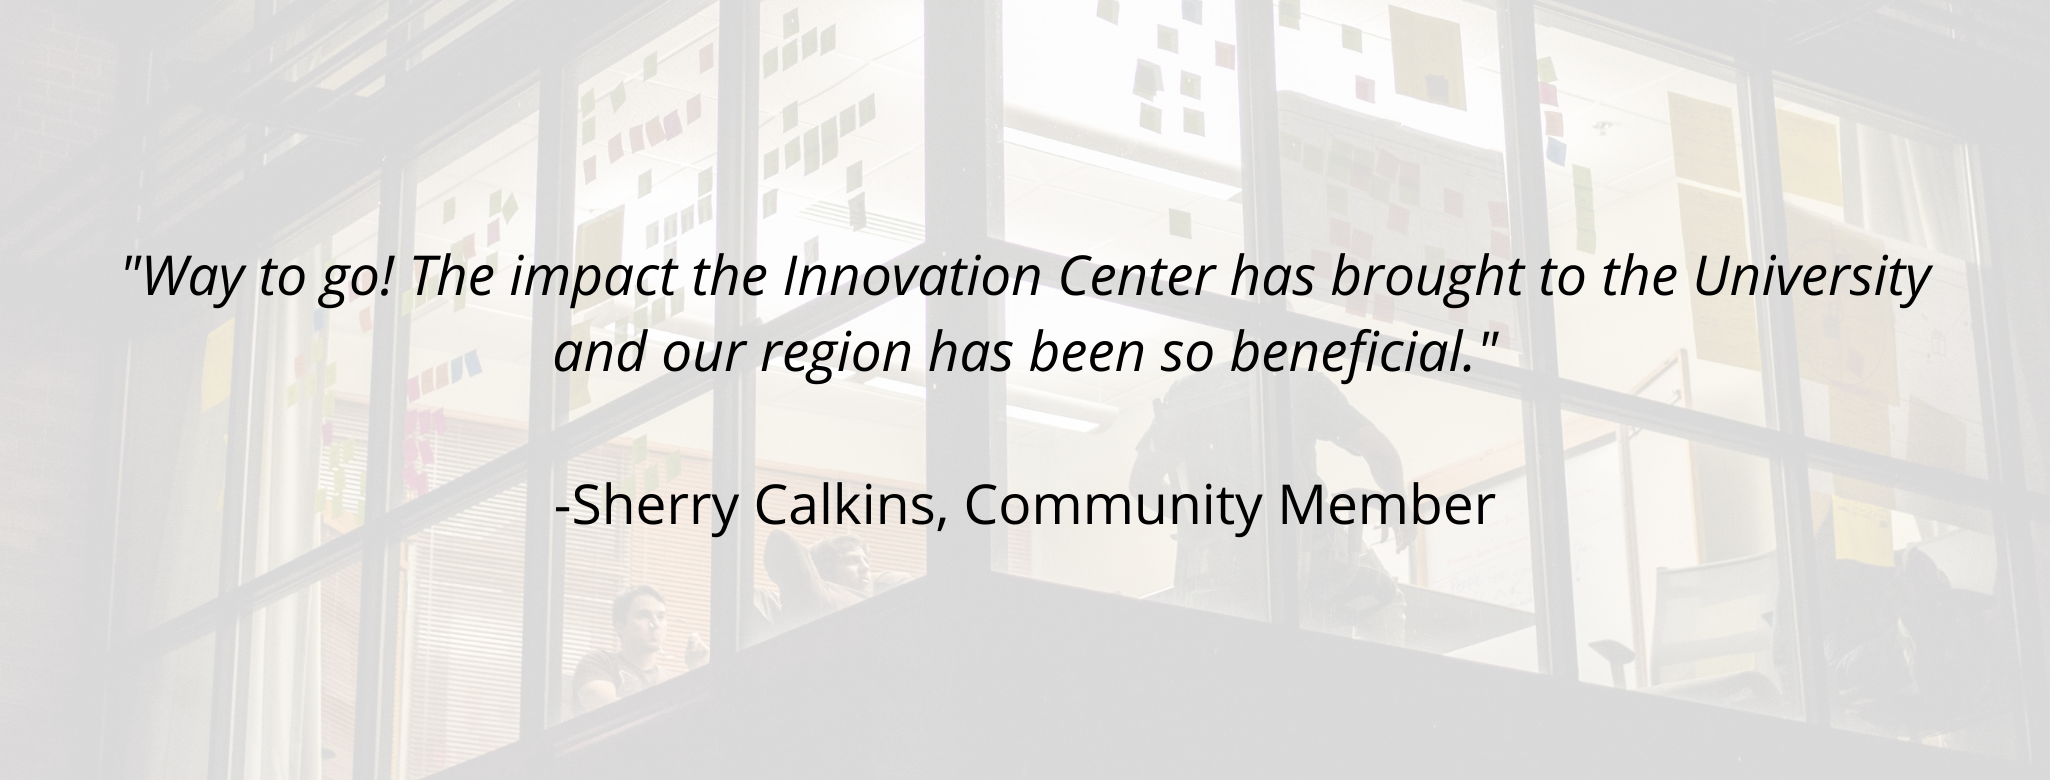 """Way to go! The impact the Innovation Center has brought to the University and our region has been so beneficial.""  -Sherry Calkins, Community Member"